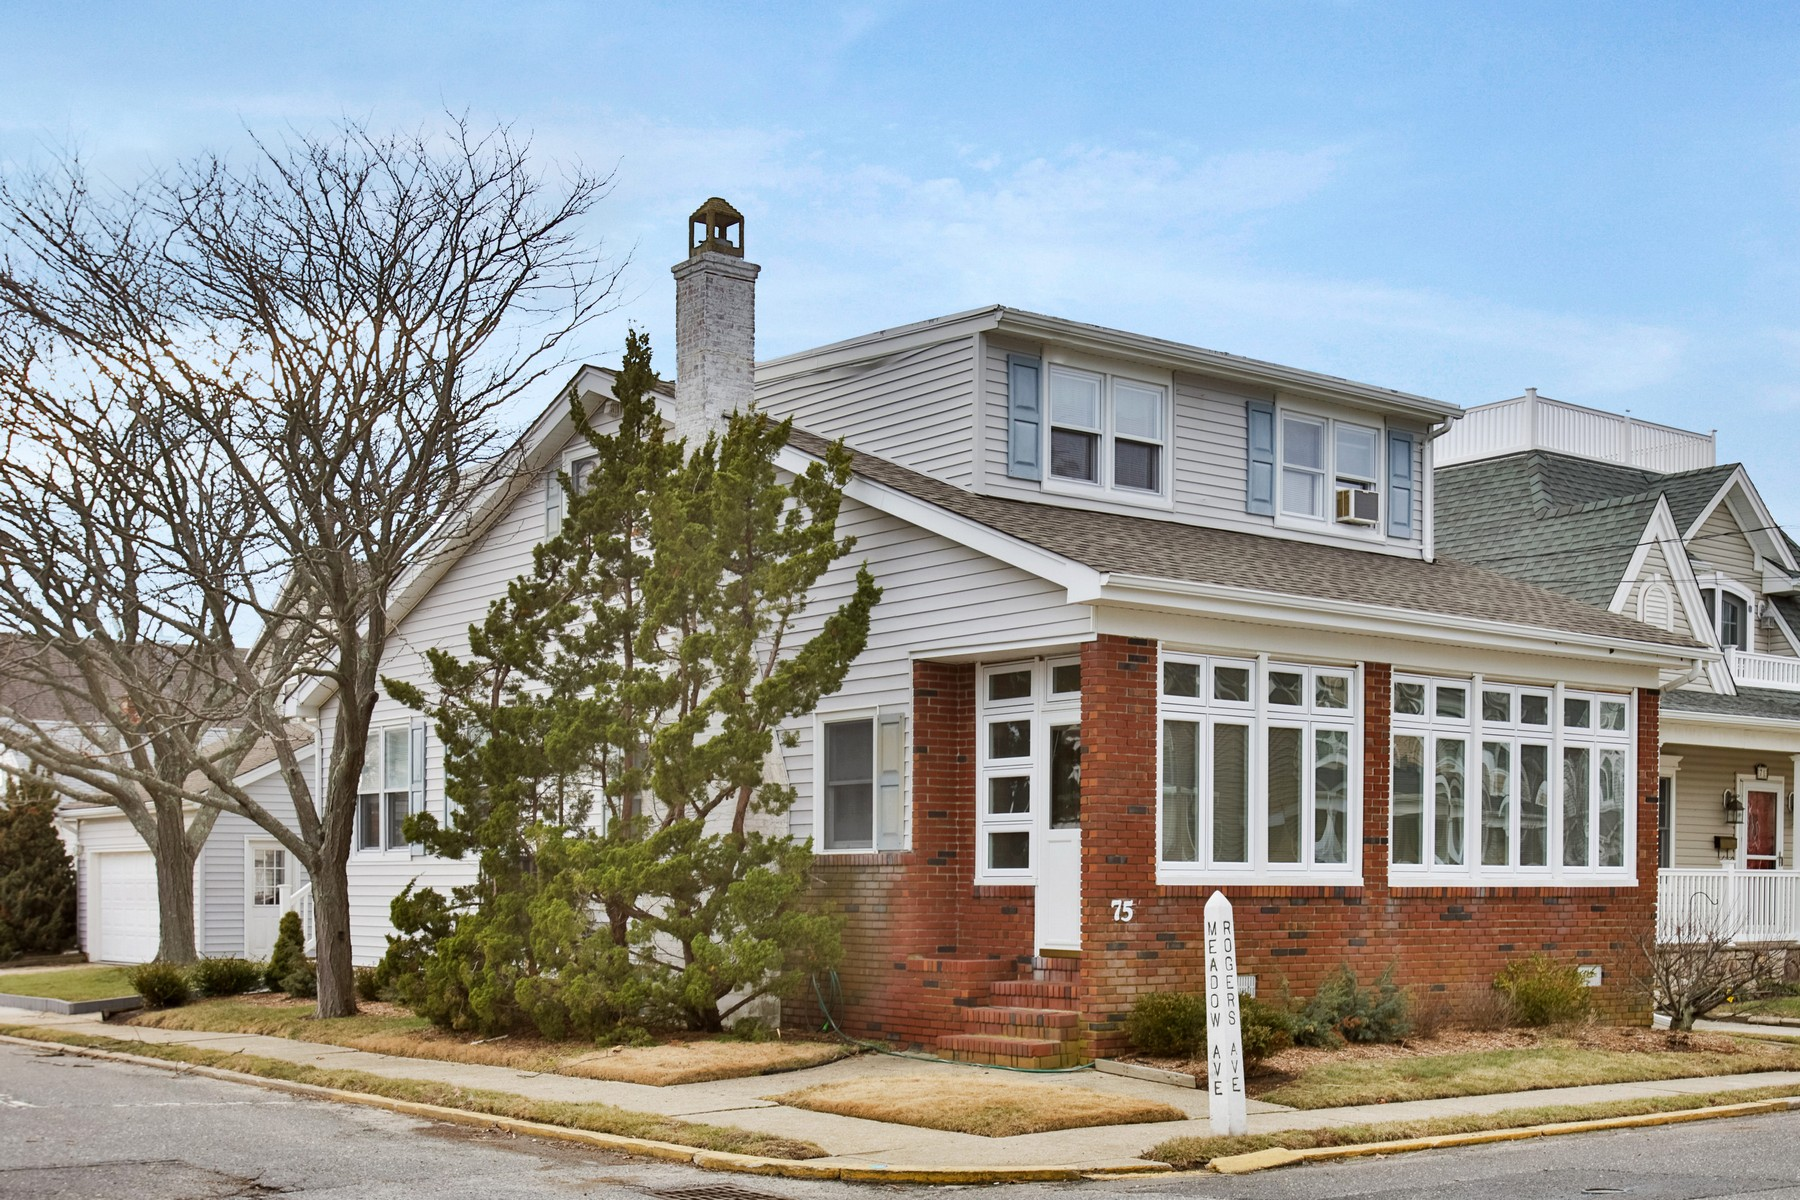 Single Family Home for Sale at Classic Manasquan Beach Home 75 Rogers Ave Manasquan, New Jersey, 08736 United States